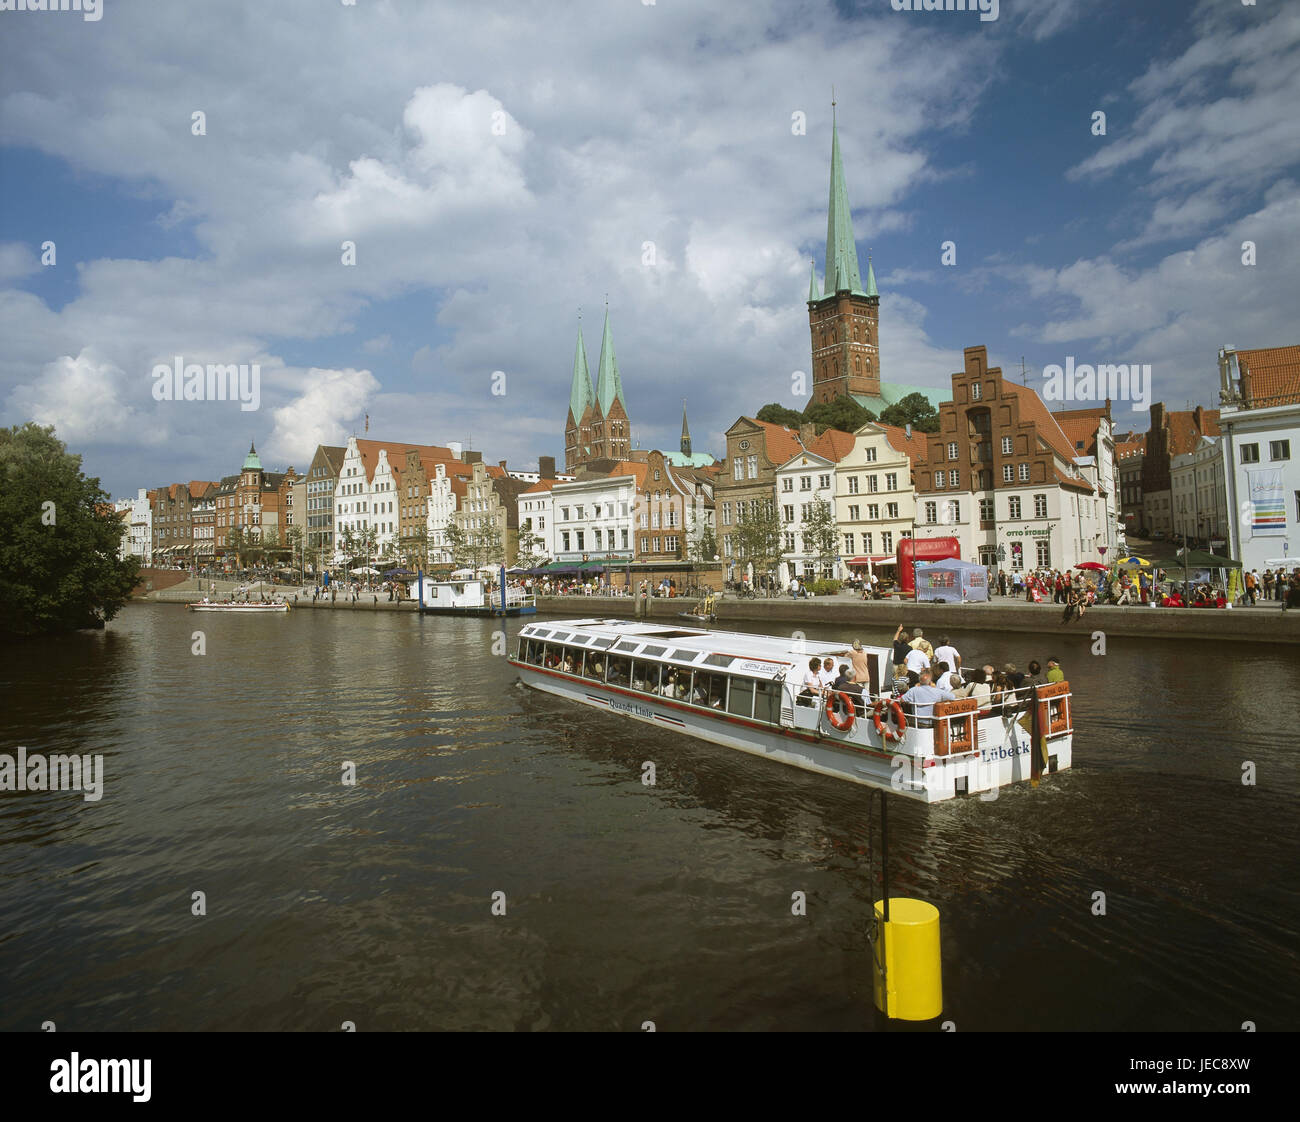 Germany, Schleswig - Holstein, Lübeck, Old Town, Marien's church, Peter's church, Obertrave, bank promenade, - Stock Image